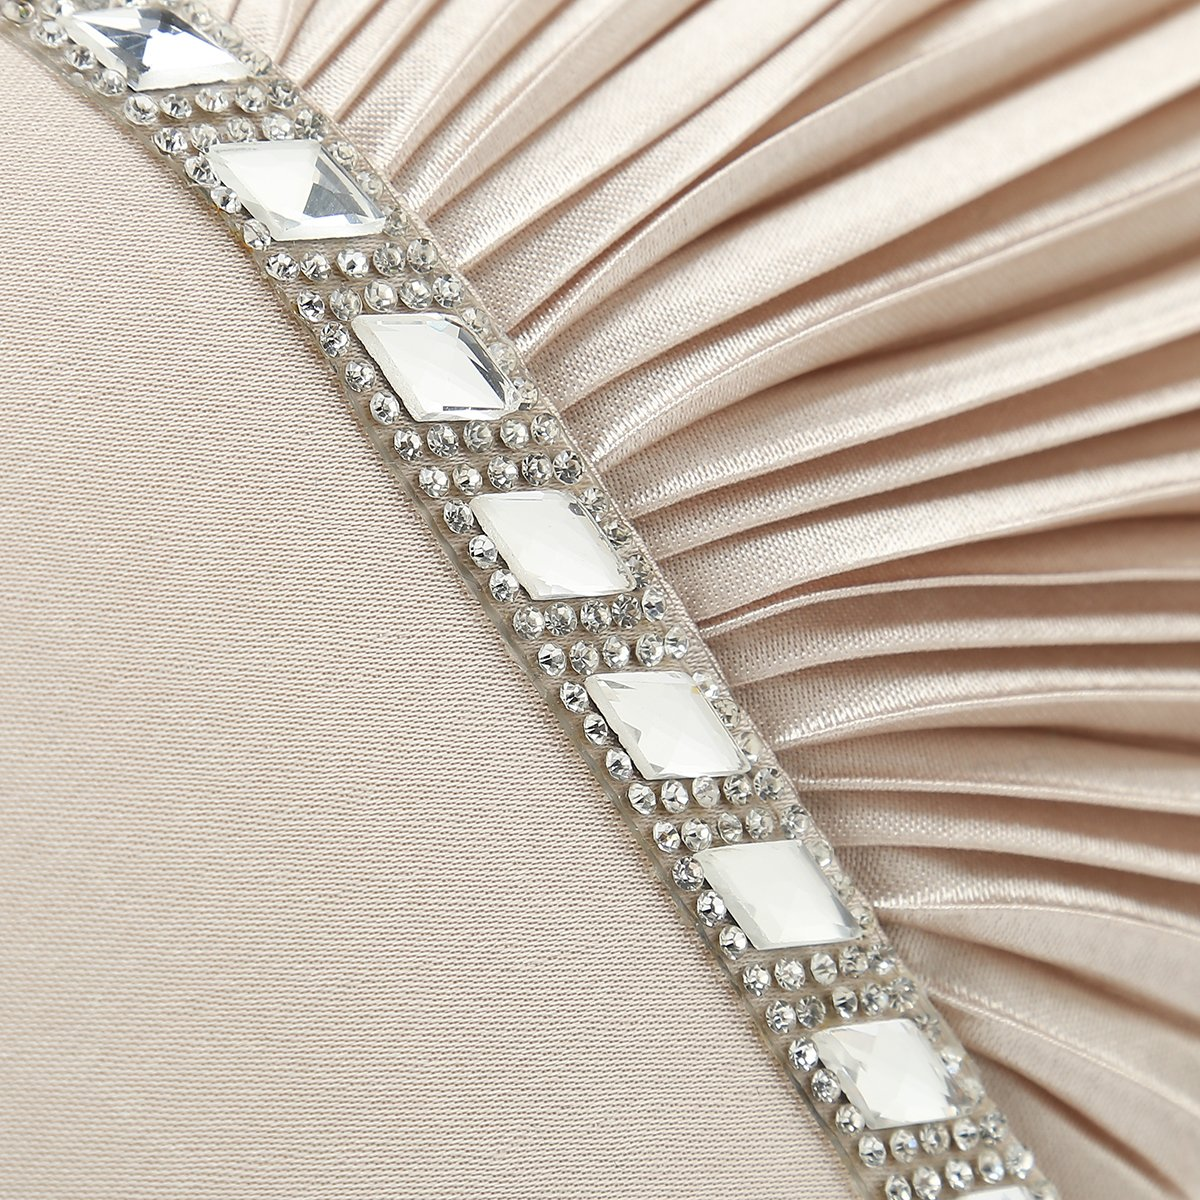 Charming Tailor Evening Handbag Crystal Embellished and Pleated Satin Clutch (Champagne) by Charming Tailor (Image #5)